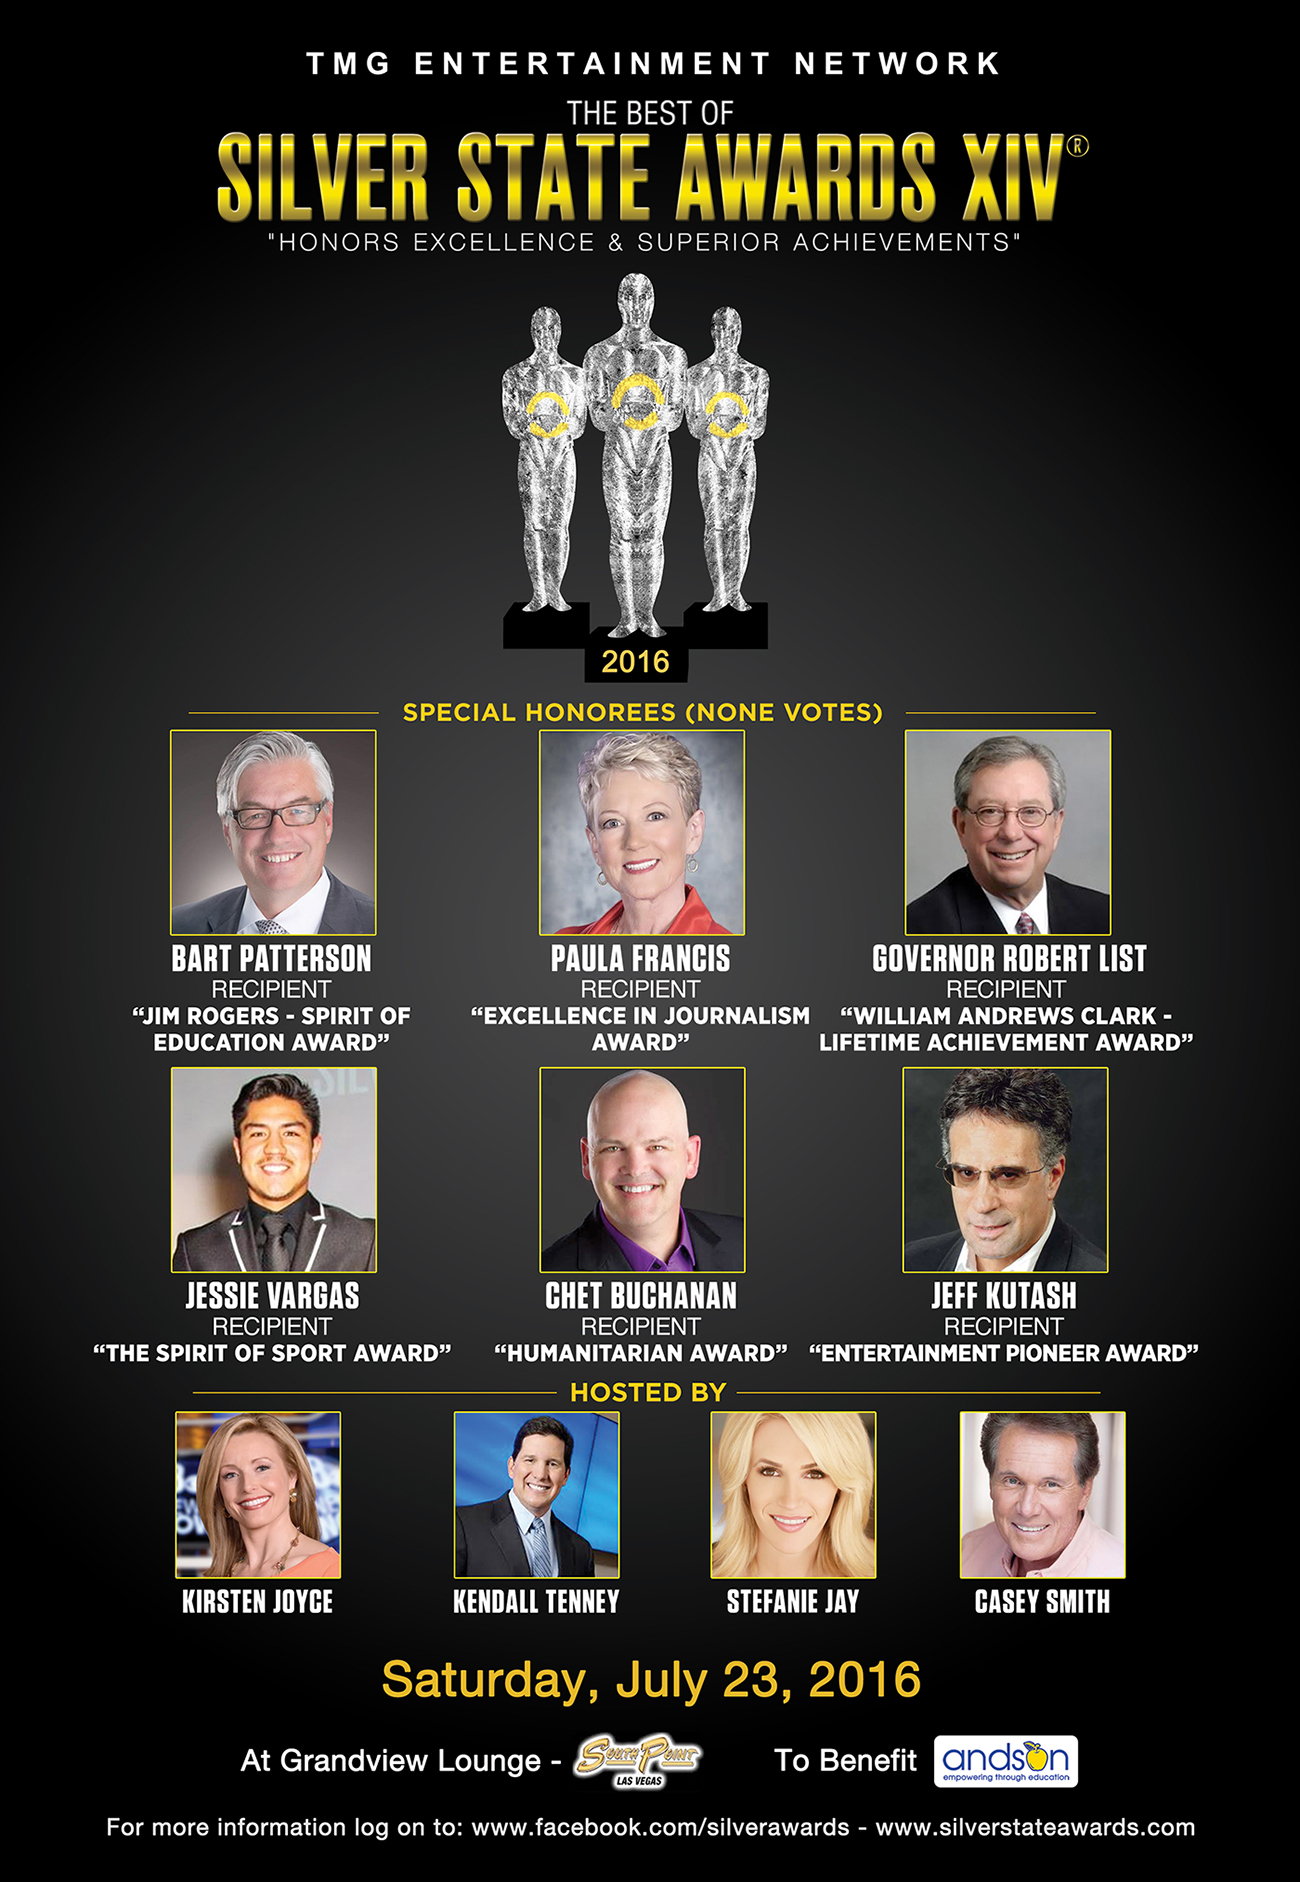 The TMG Entertainment Network, Silver State Awards Presented the 2016 Honorary Awards to Paula Francis, Chet Buchanan, Bart Patterson, and Jeff Kutash at the Award Ceremonies in Las Vegas